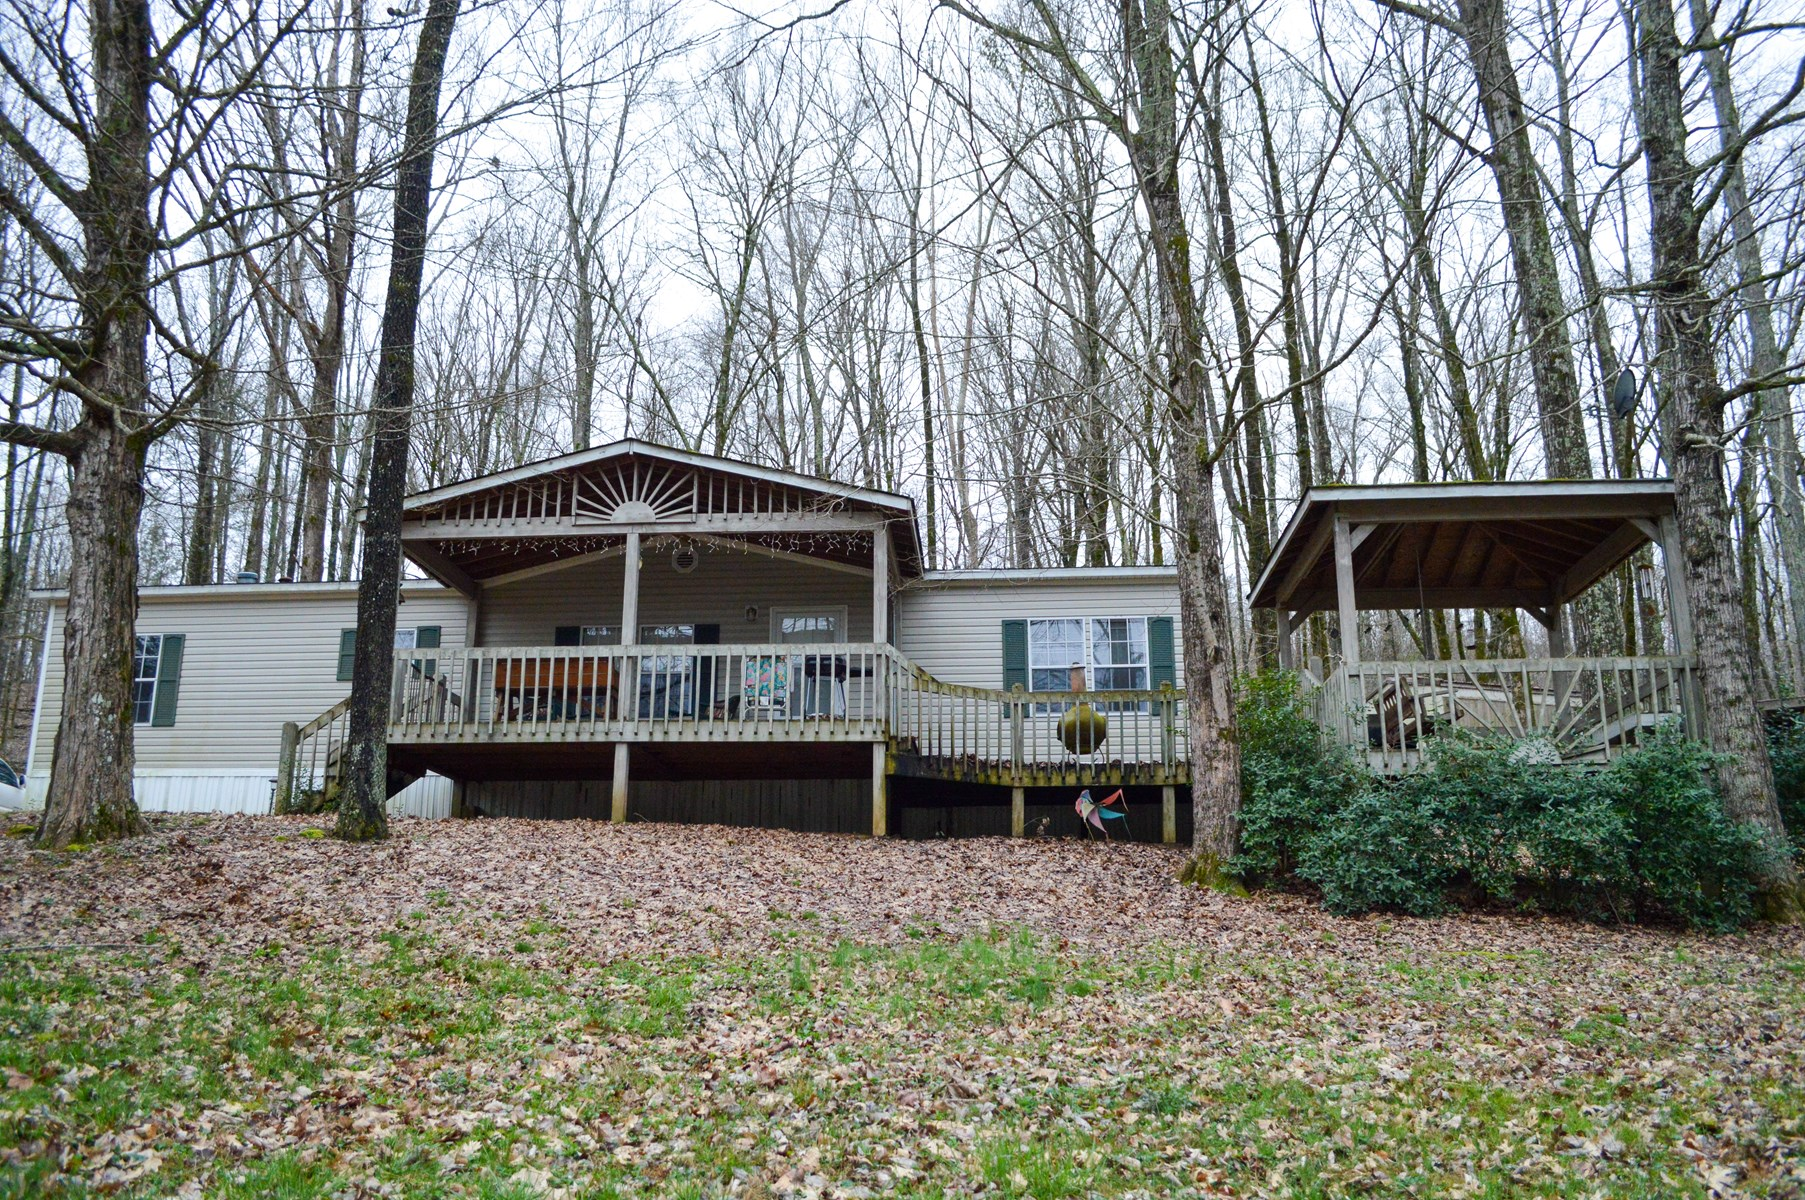 Vacation Home Near TN River for Sale, in Clifton, TN